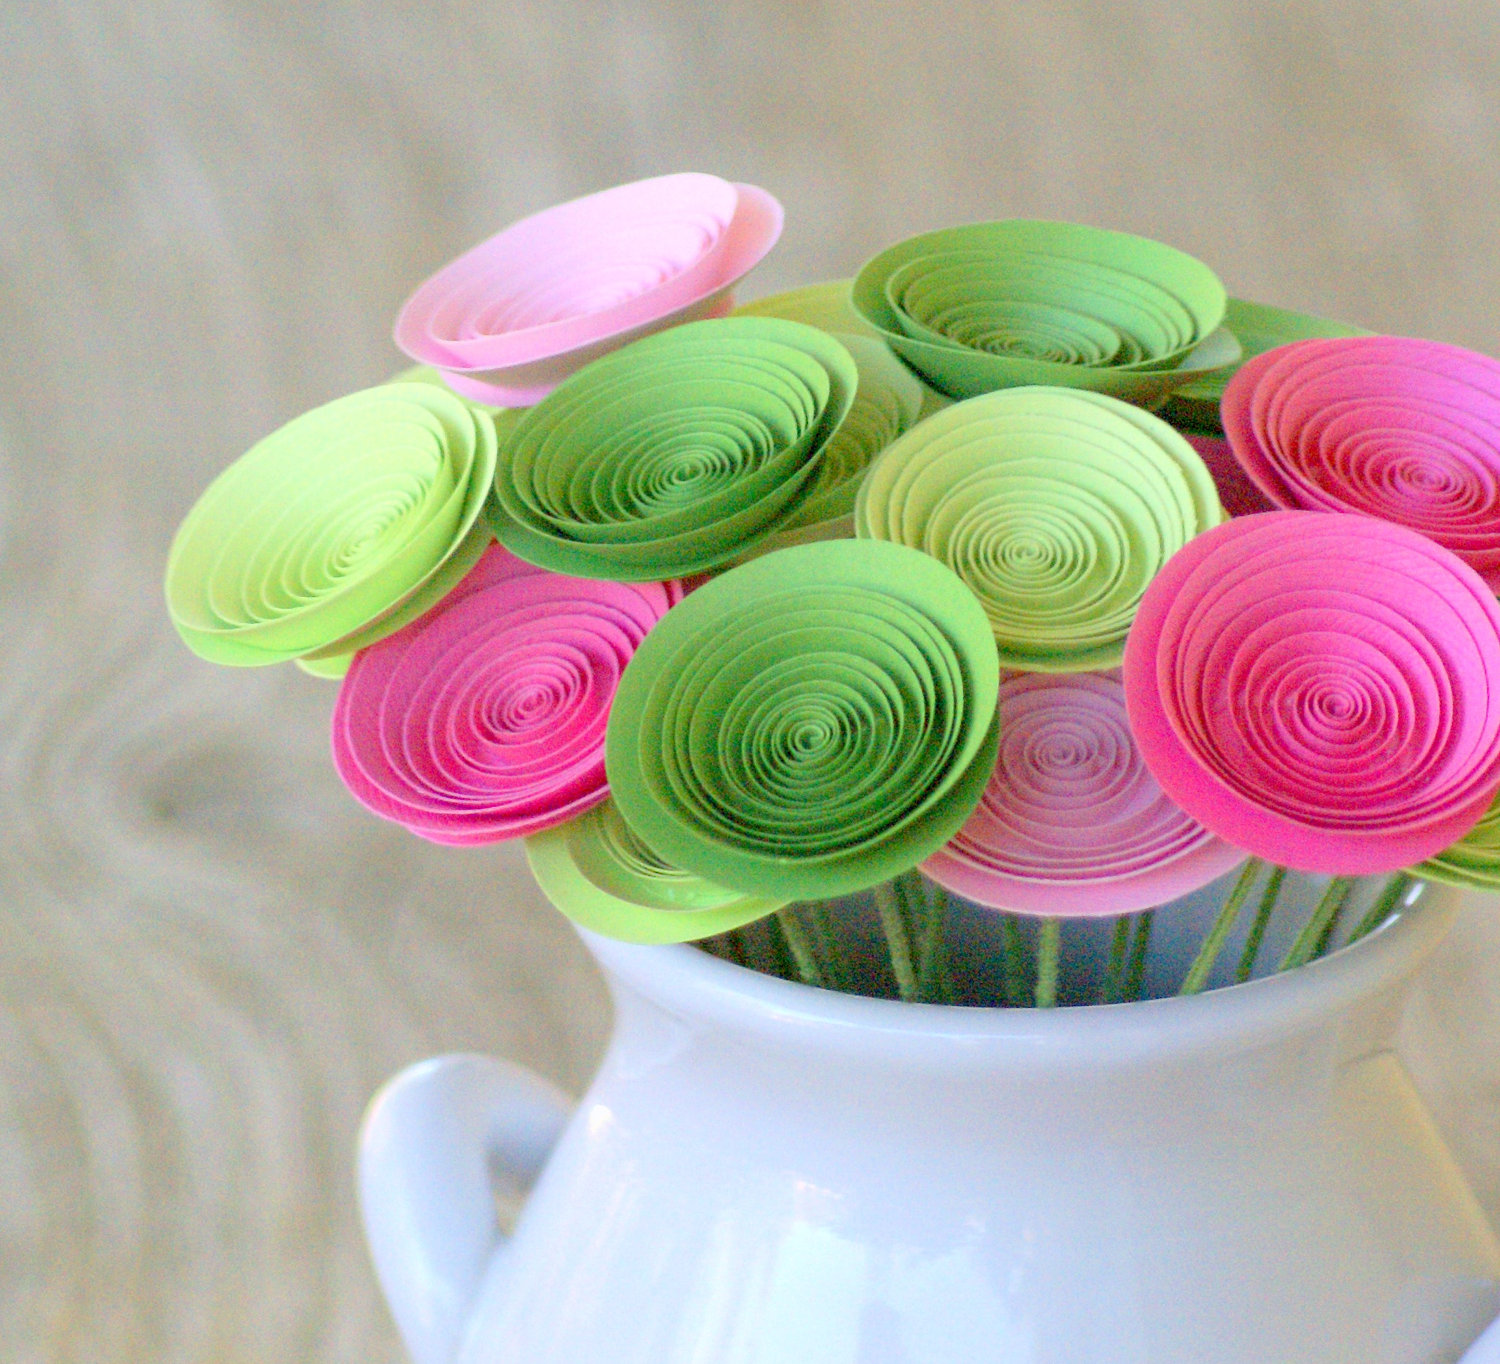 Paper flowers wallpapers high quality download free mightylinksfo